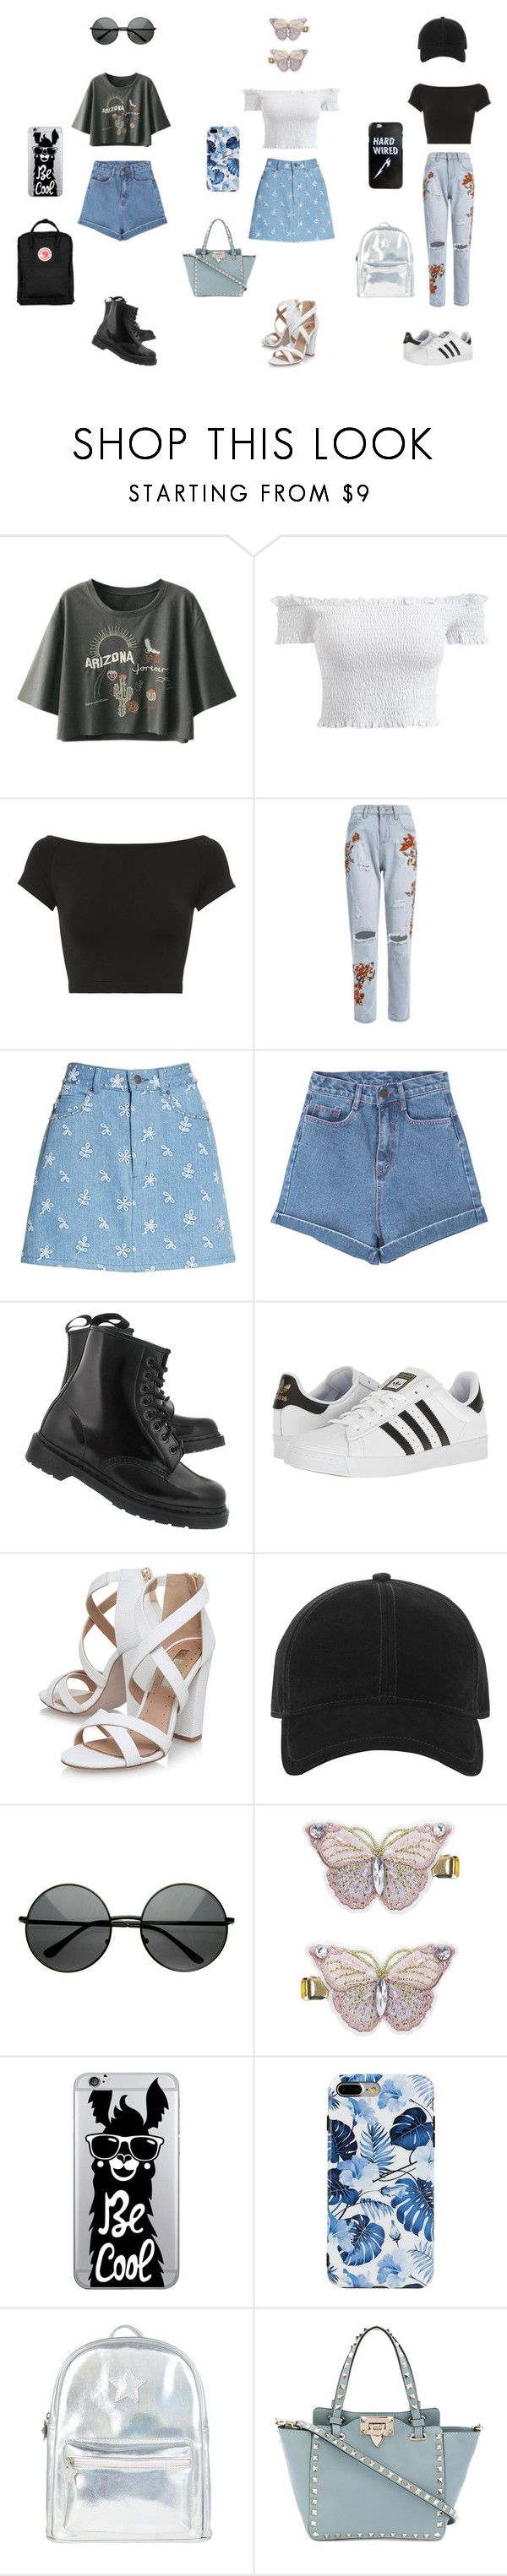 """Say i hate you but with love"" by withered-faces on Polyvore featuring moda, Helmut Lang, Marc Jacobs, Pink Stitch, Dr. Martens, adidas, Miss KG, rag & bone, Monsoon y OTM Essentials"